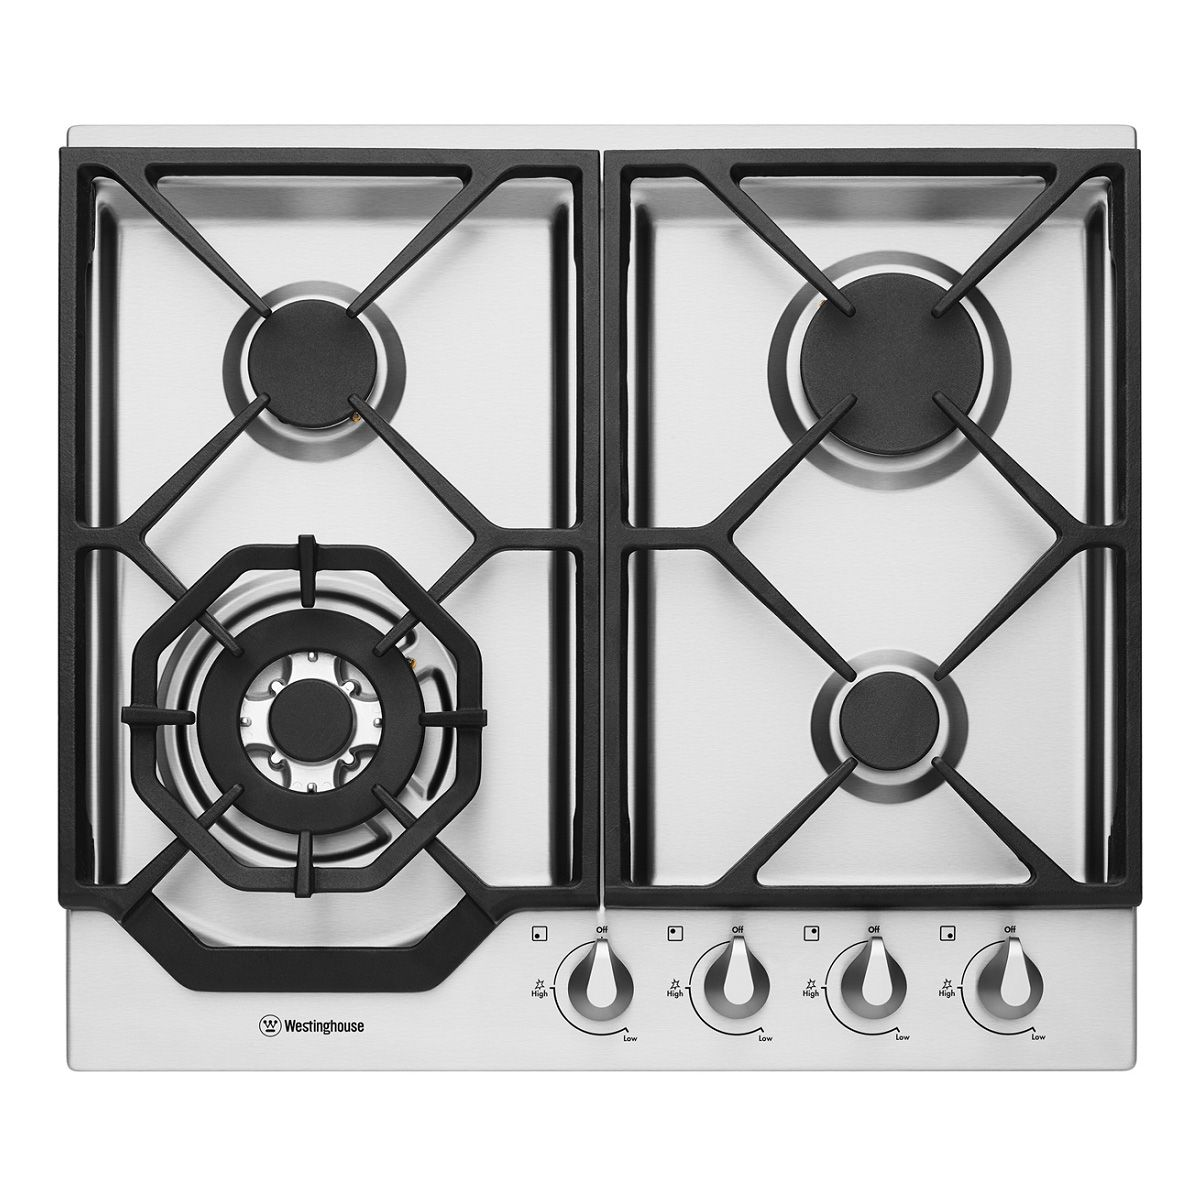 Features Control Knob Finish: Painted Silver FamilySafe trivets Electric Ignition 10A plug & lead High-powered wok burner LPG conversion kits included – Must be converted by a licensed plumber